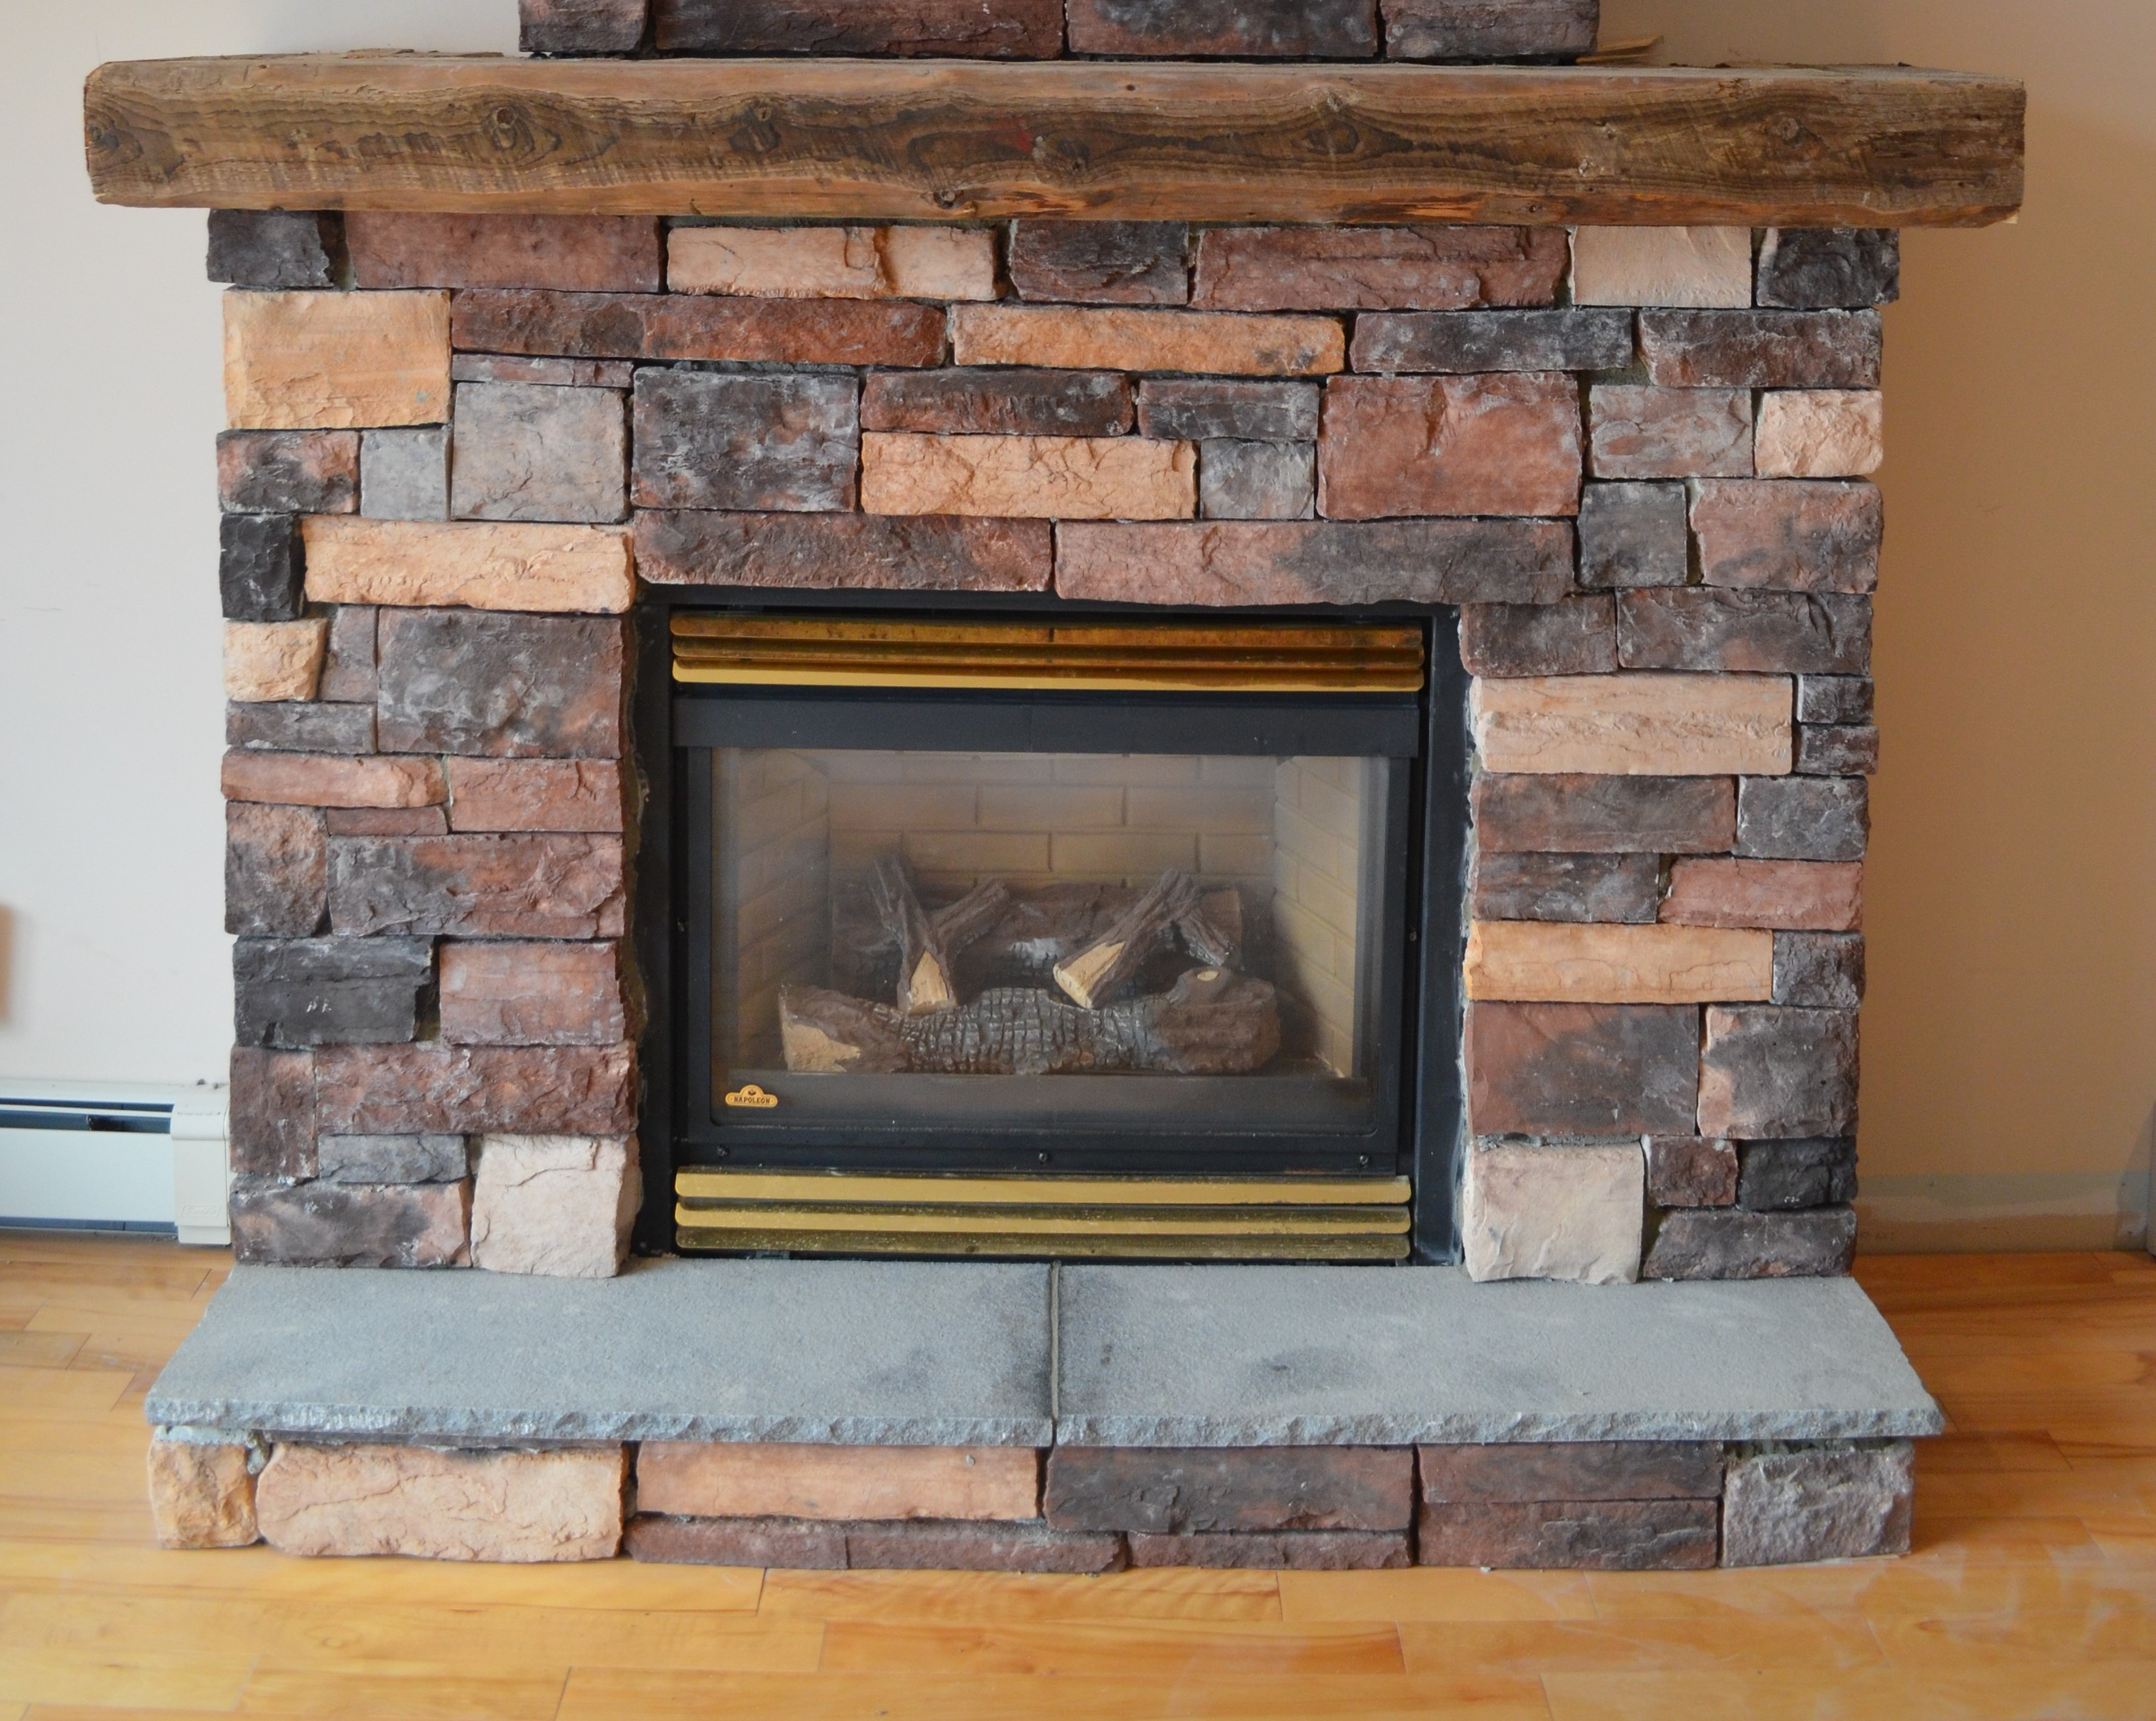 definition phazer porcelain mirro screen set options radiant logs standard gas fireplace prrp safety panels product flame products napoleon gallery log reflective high